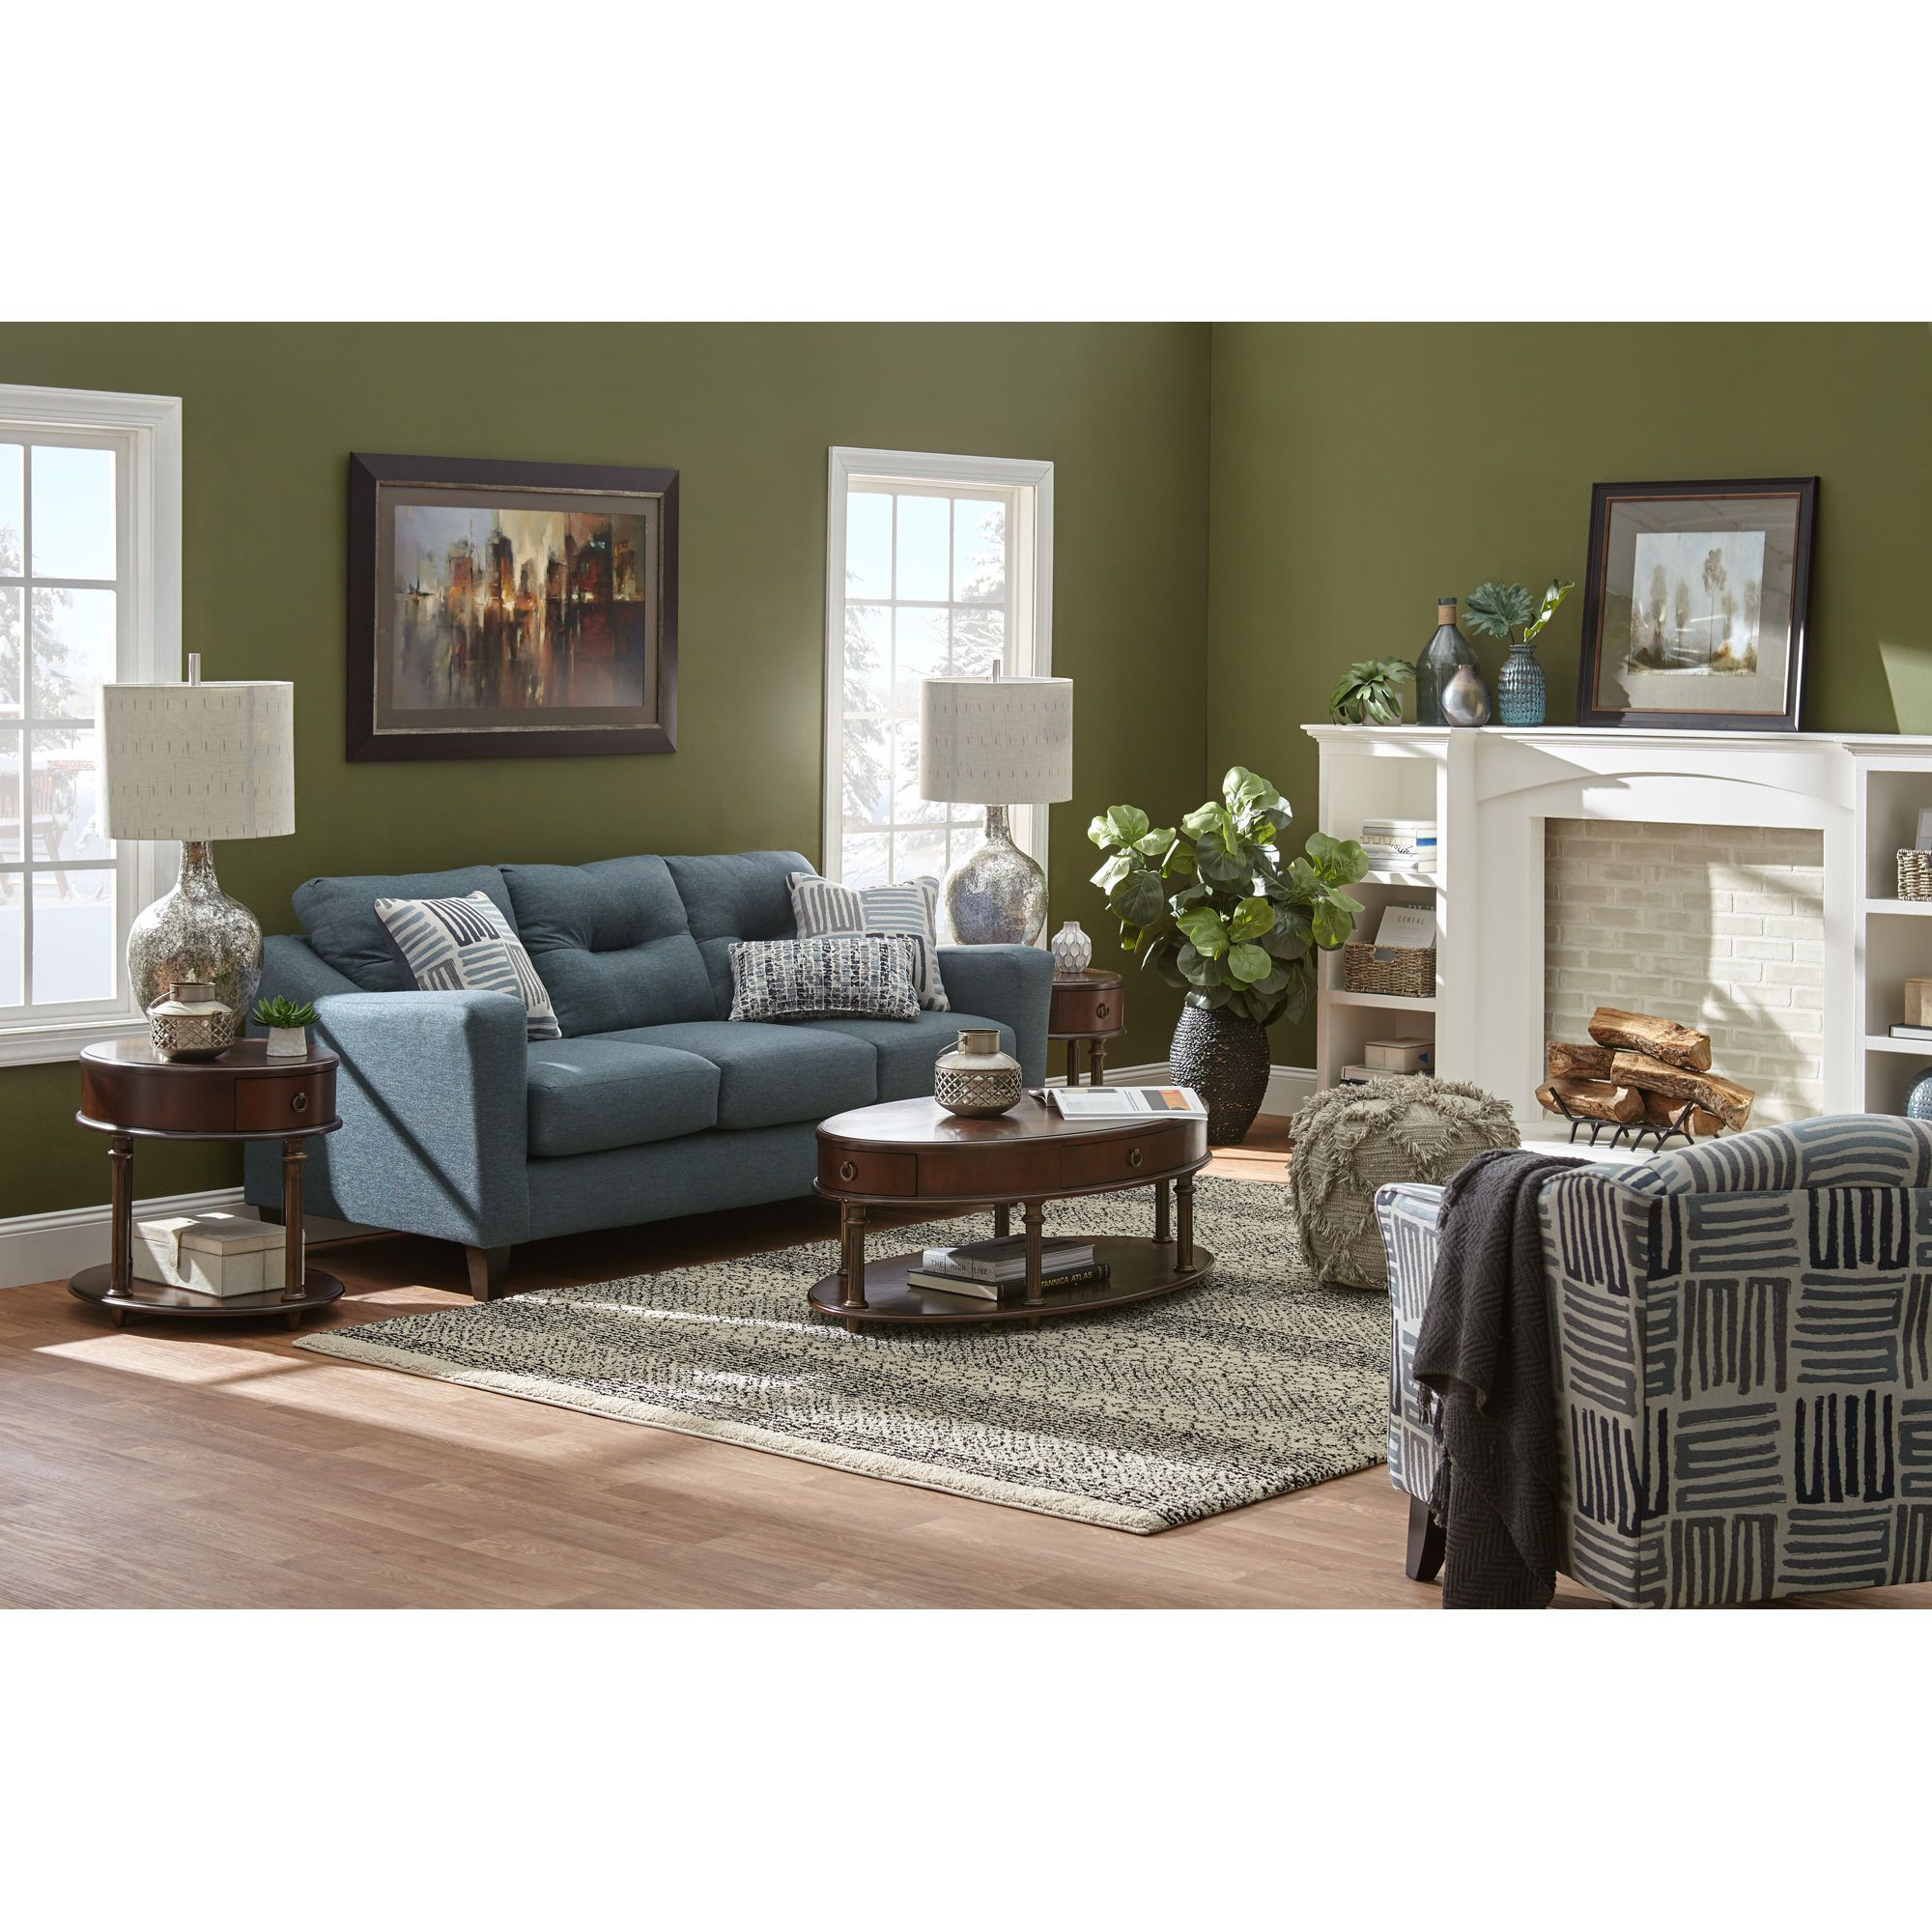 Slumberland Furniture Wallis Sofa Furniture, Sofa sale